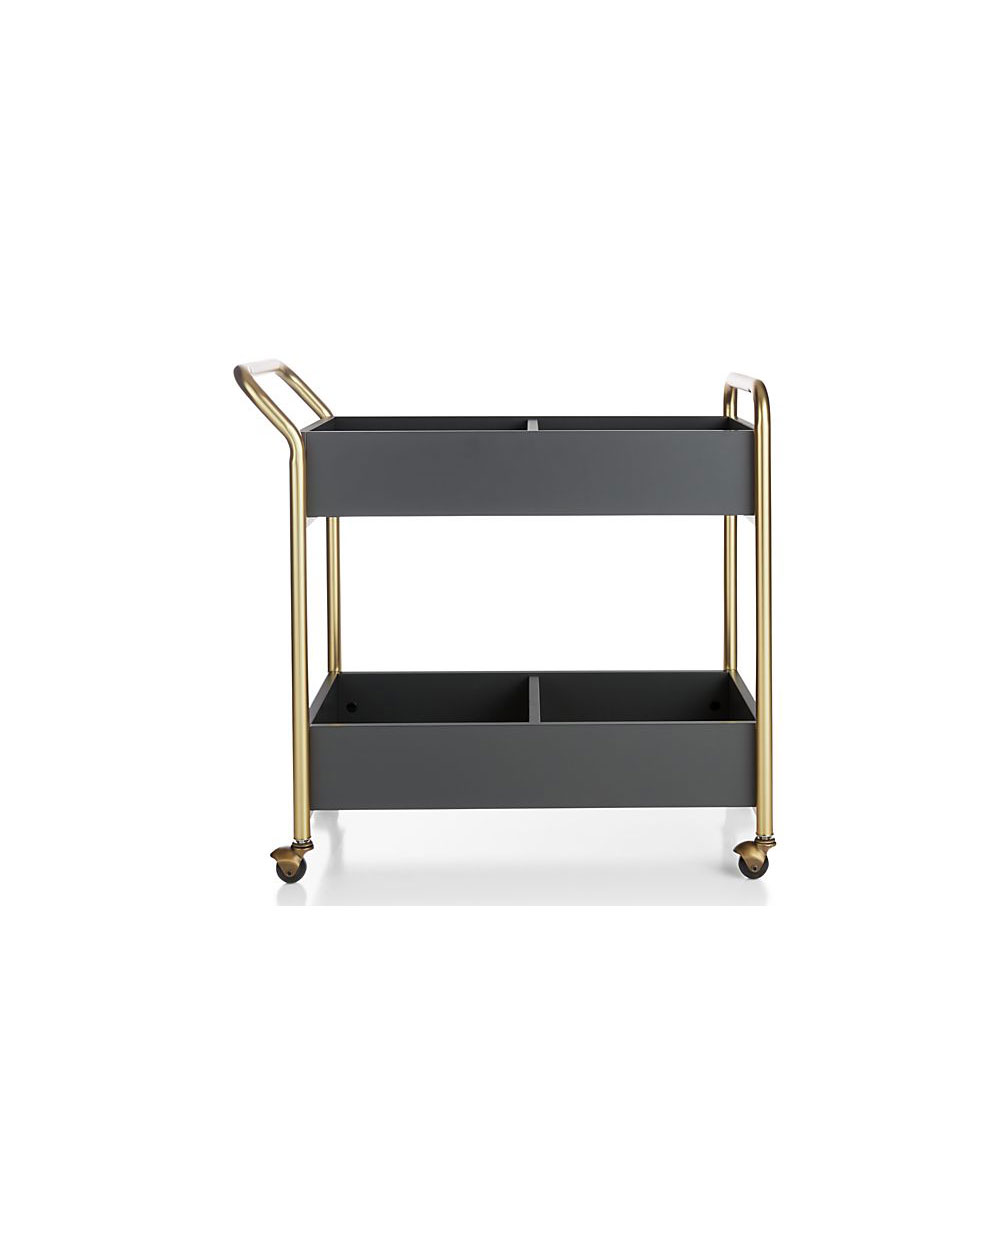 Less Than 200 Brooks Charcoal Gold Rolling Cart